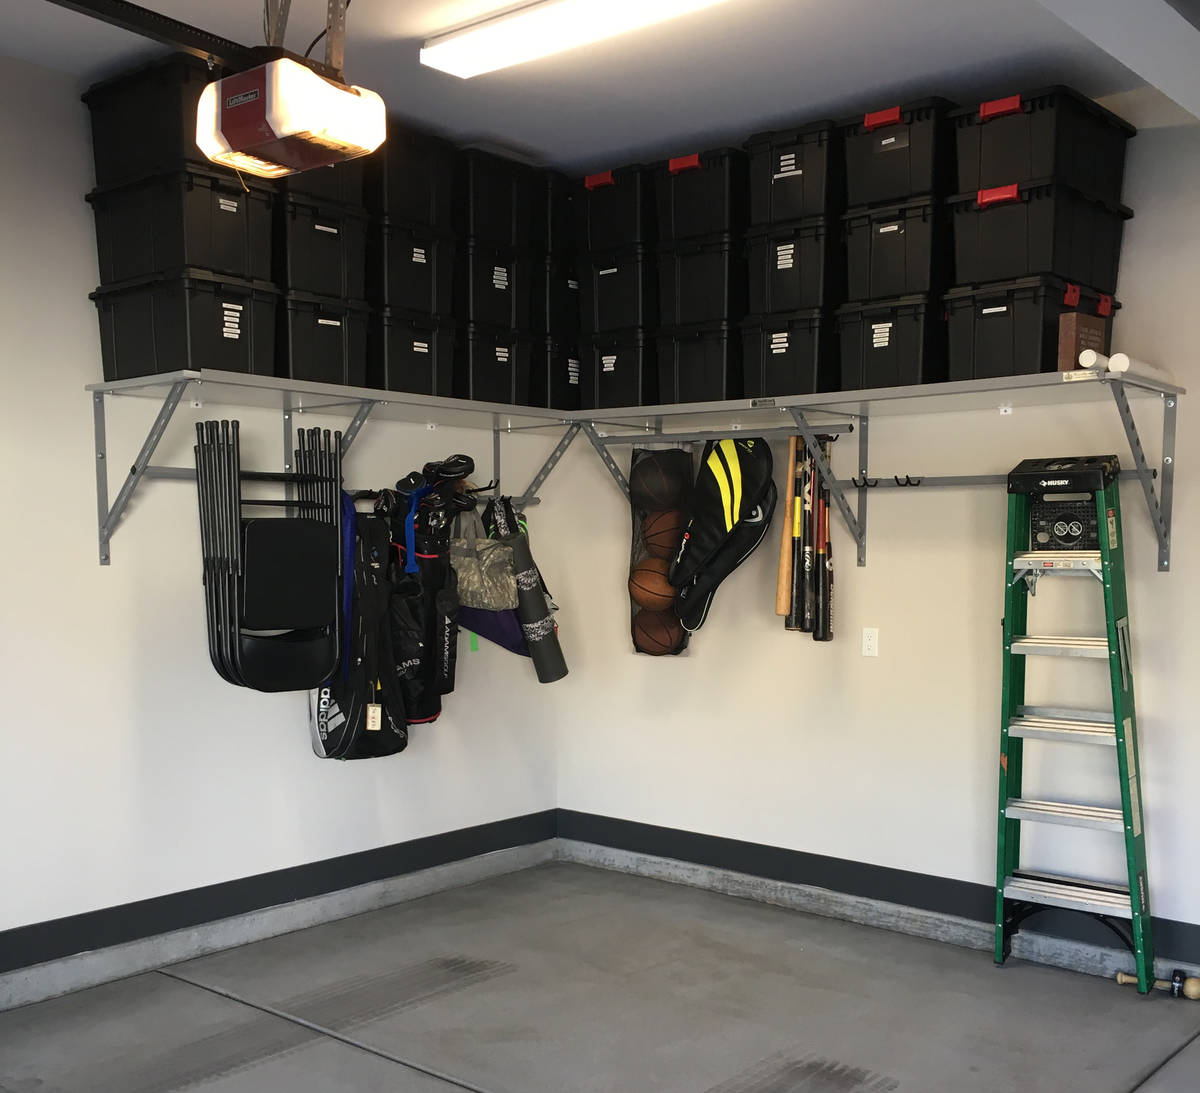 Garage shelves are the perfect way to utilize the vertical space of garage walls and keep summe ...